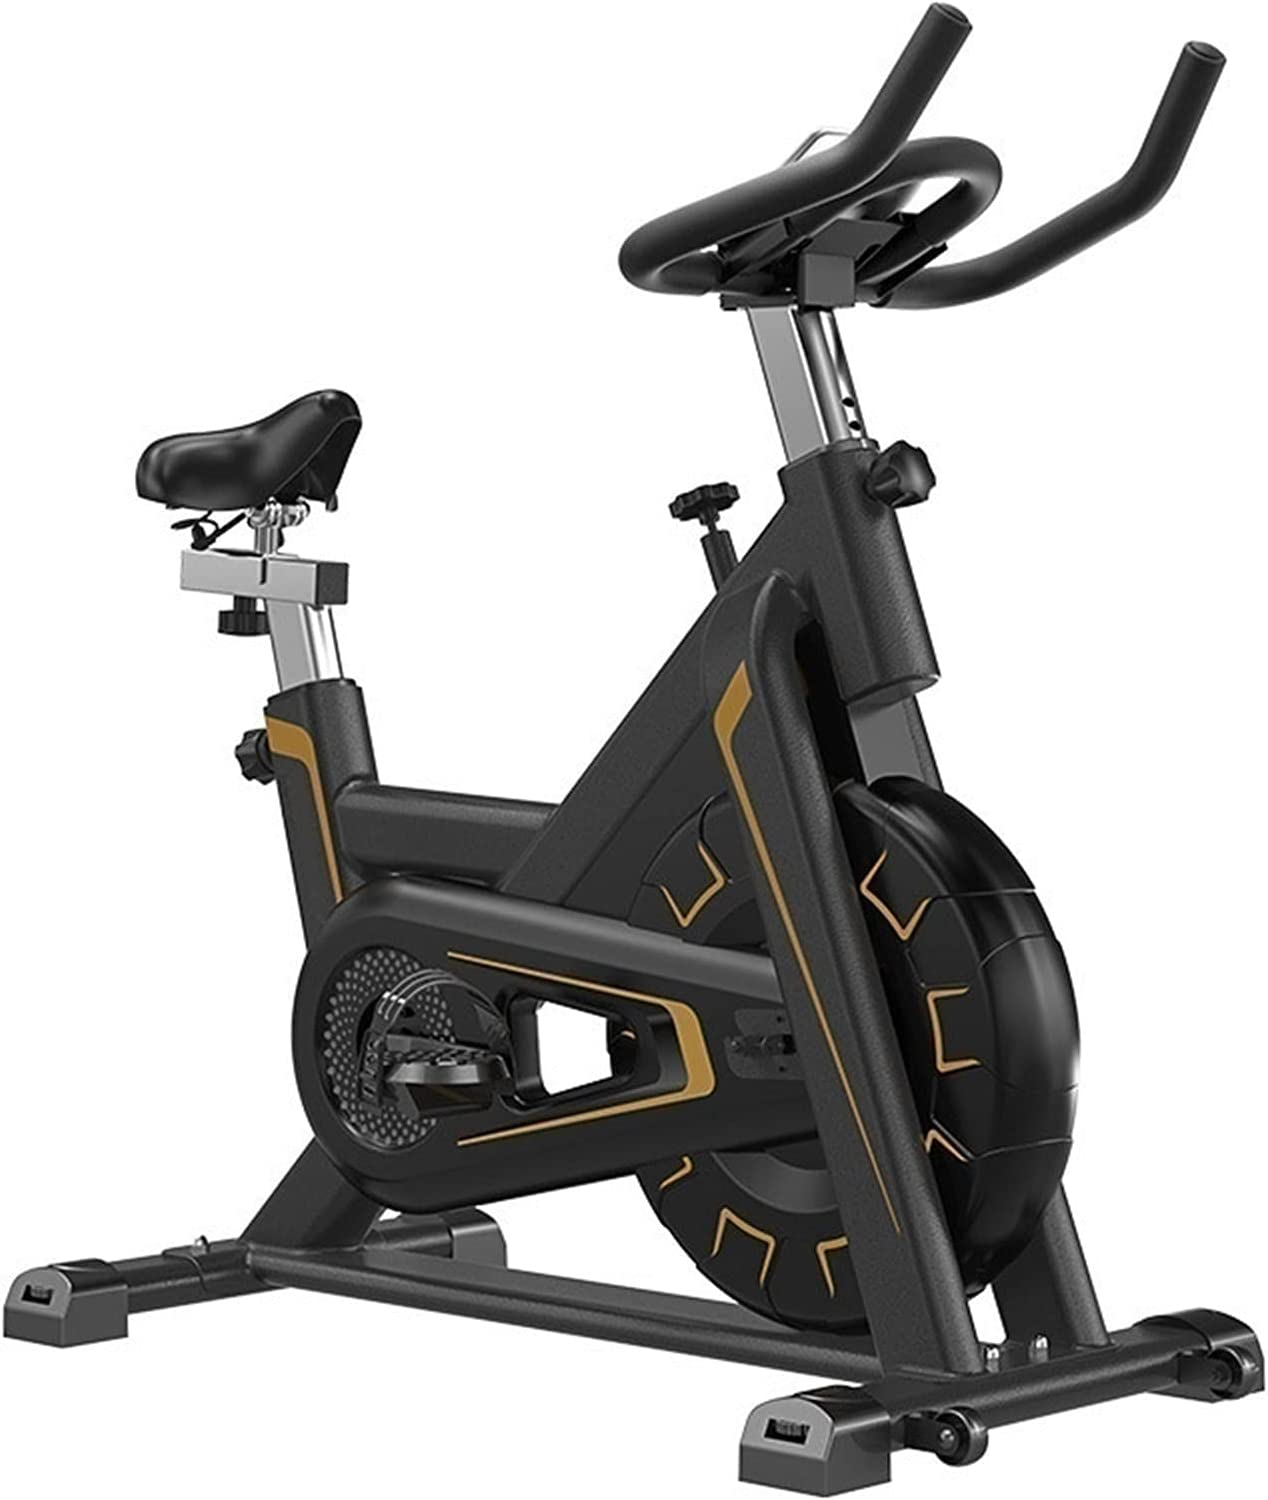 XiuLi Exercise Bike Direct sale of manufacturer Classic Indoor Heart Magnetic Brake